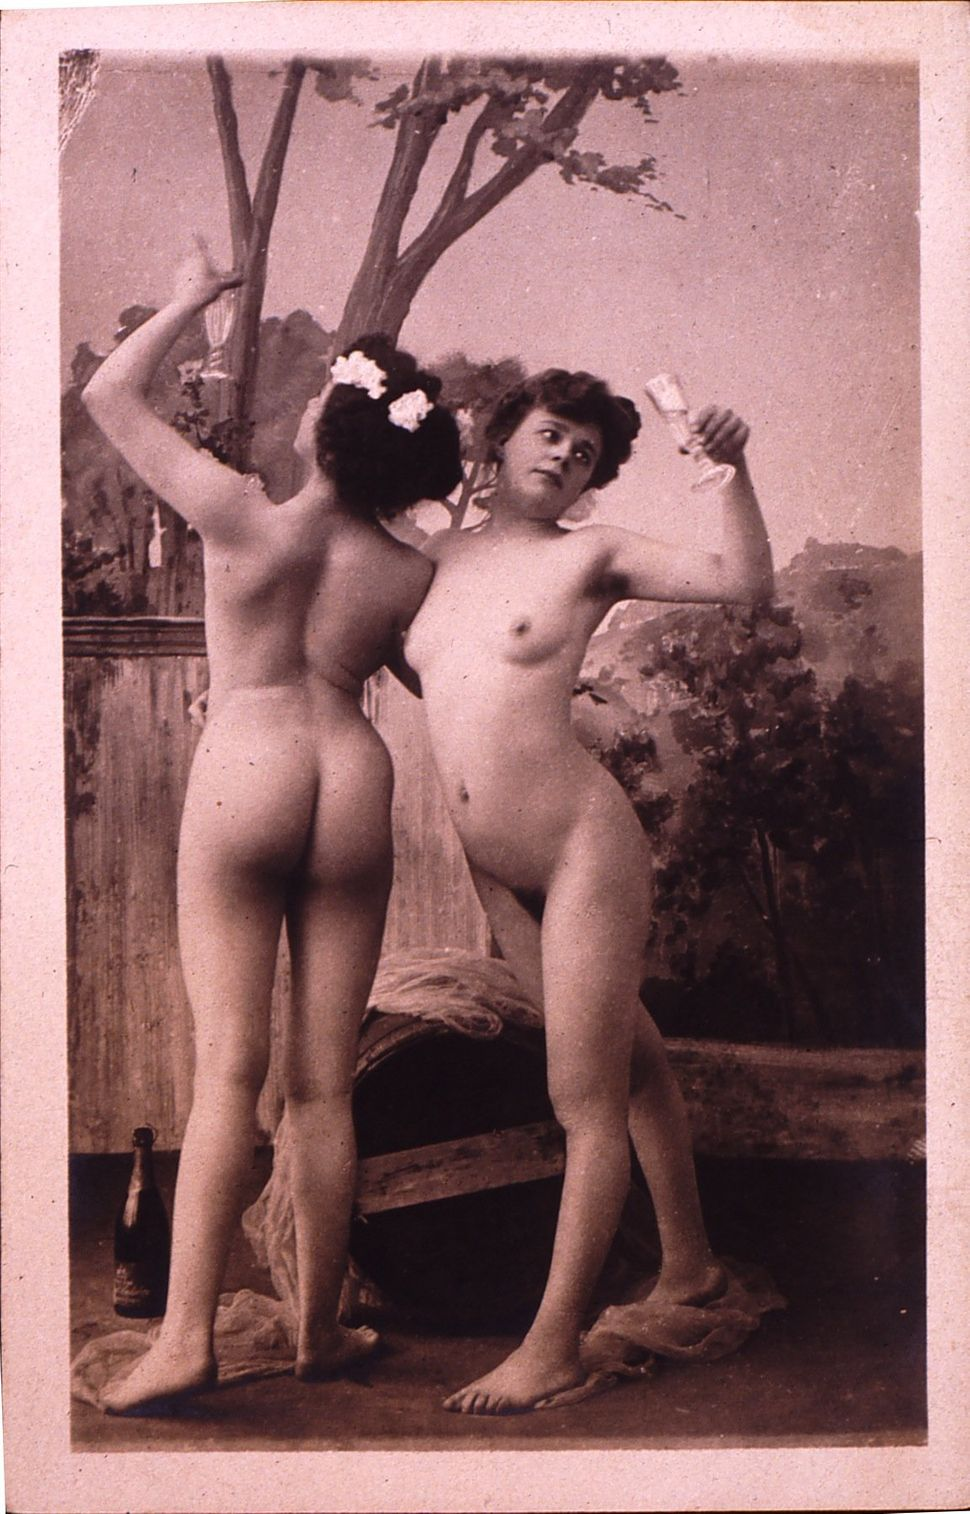 Lost Erotica Of Spain Reveals An Overlooked Feminist History Nsfw Huffpost